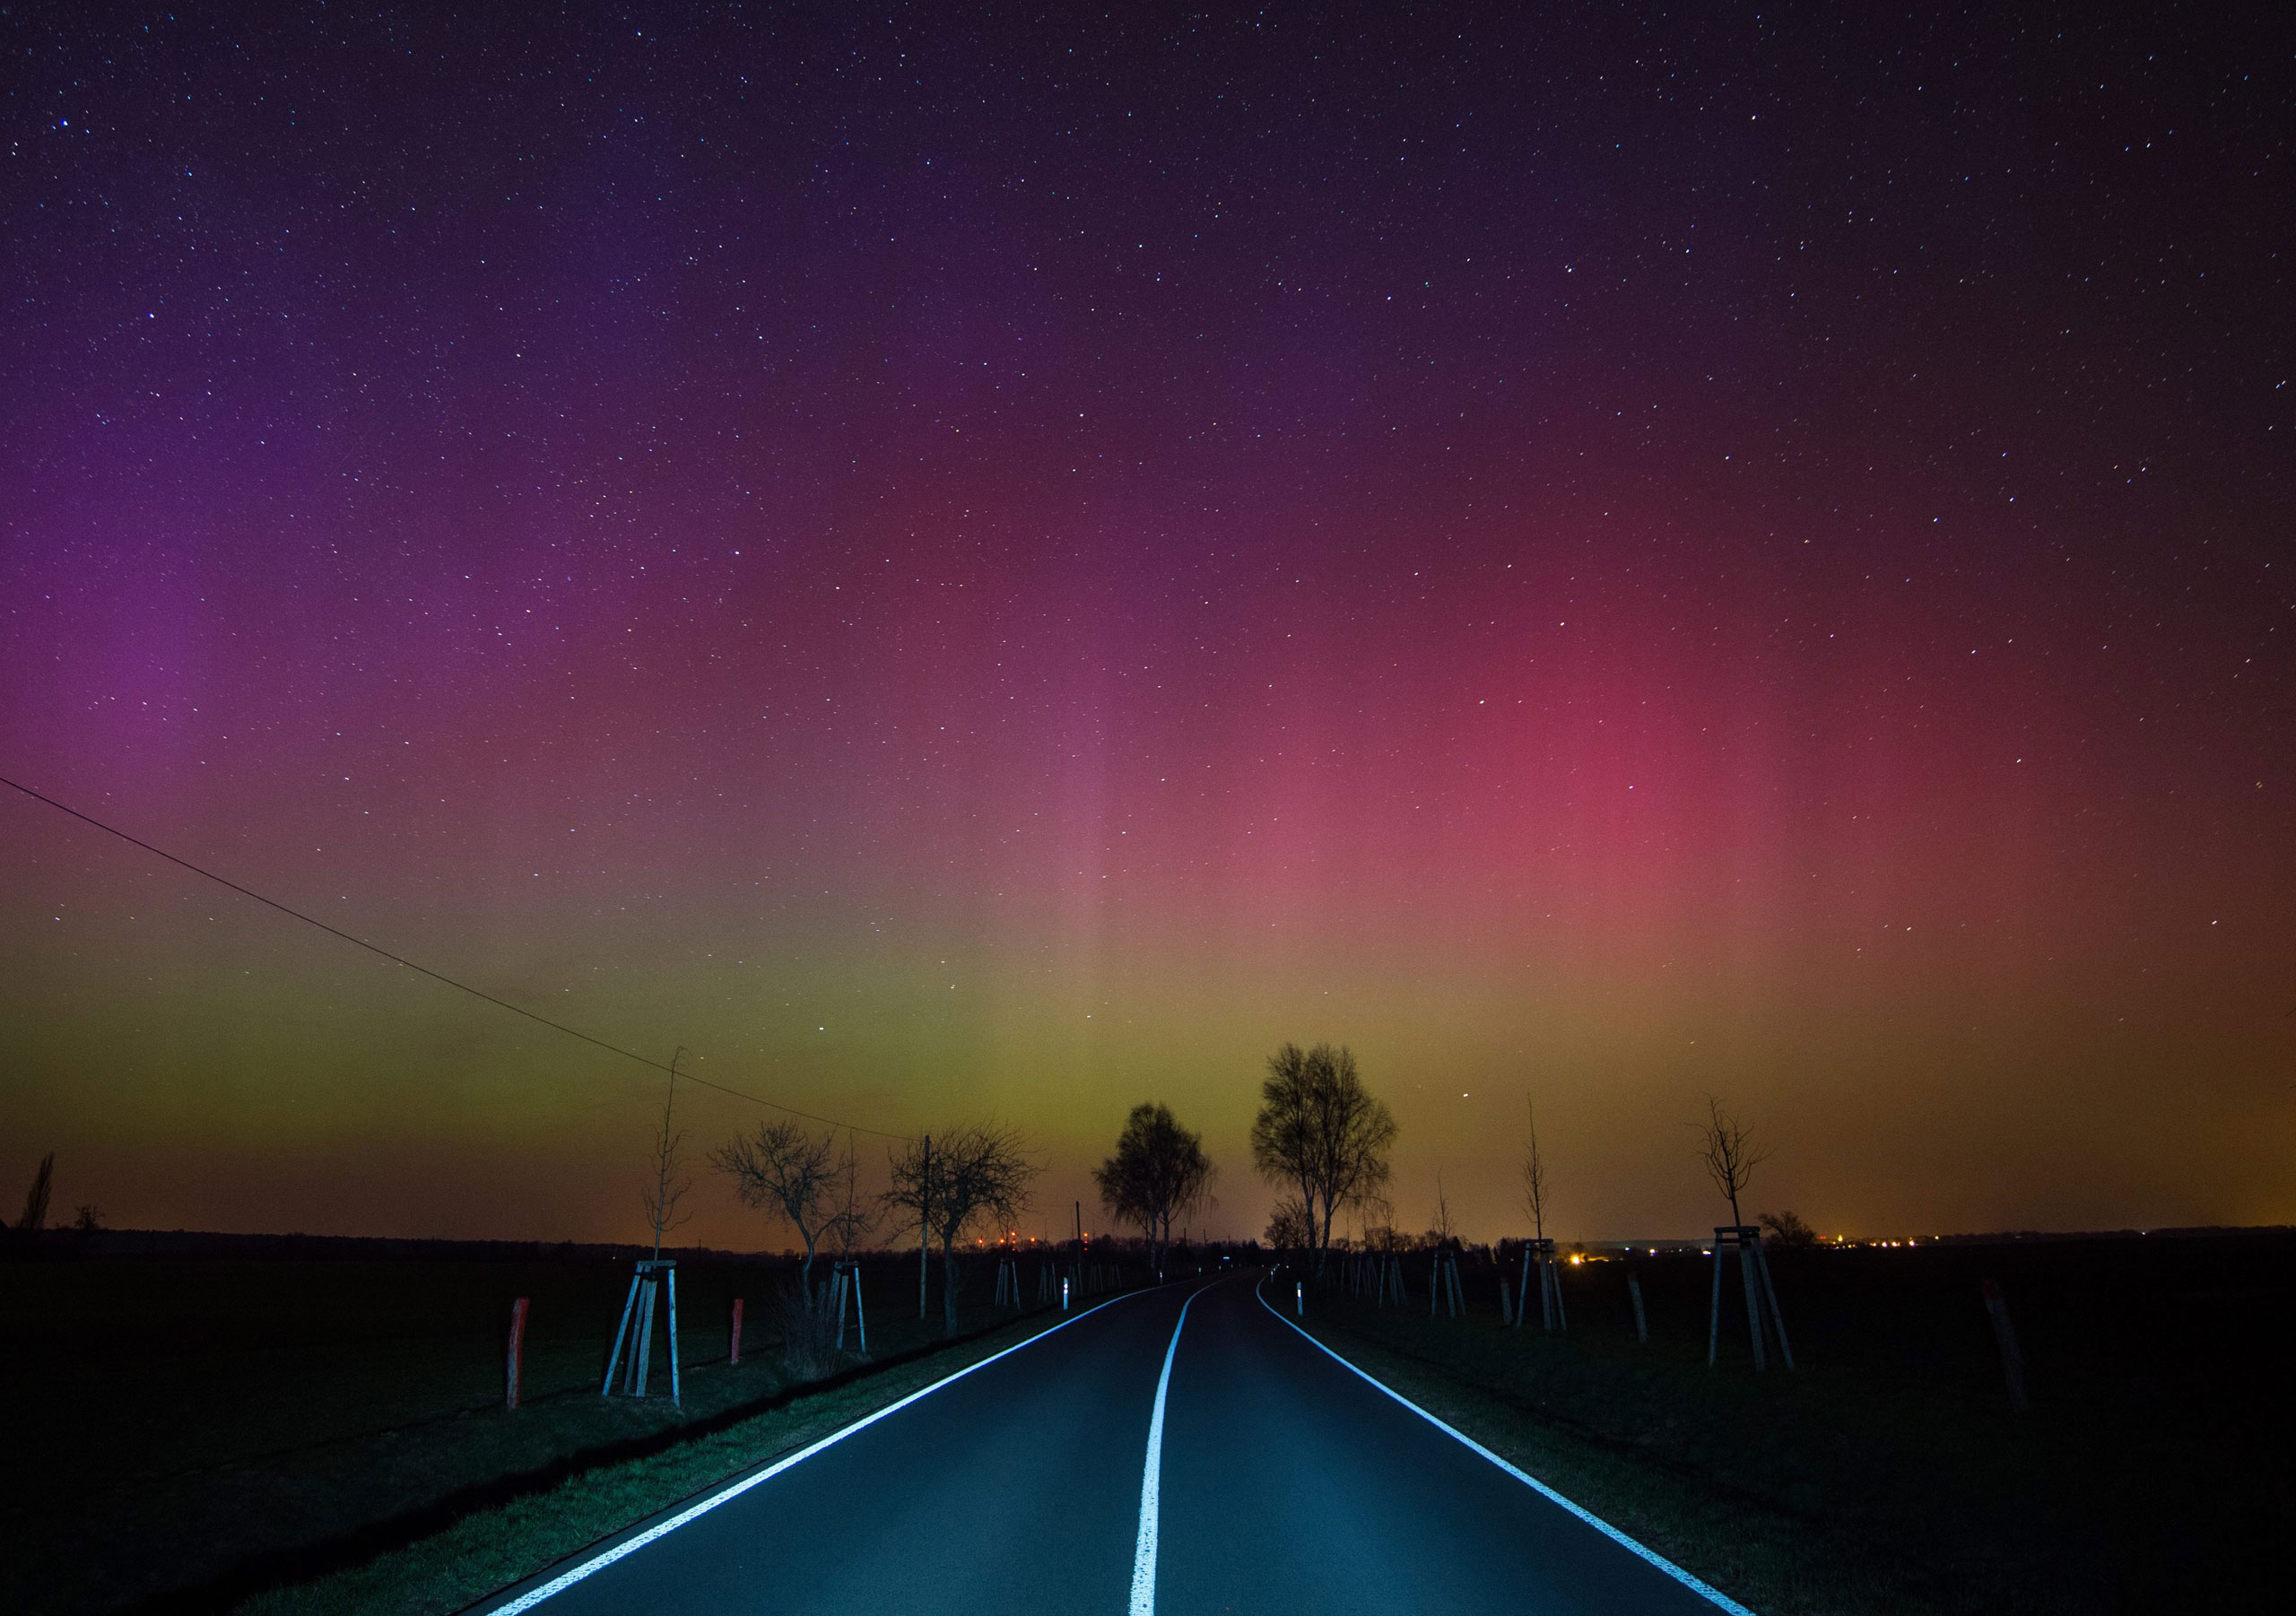 The Northern Lights over a country road near Lietzen in Maerkisch-Oderland, Germany, on March 17, 2015.